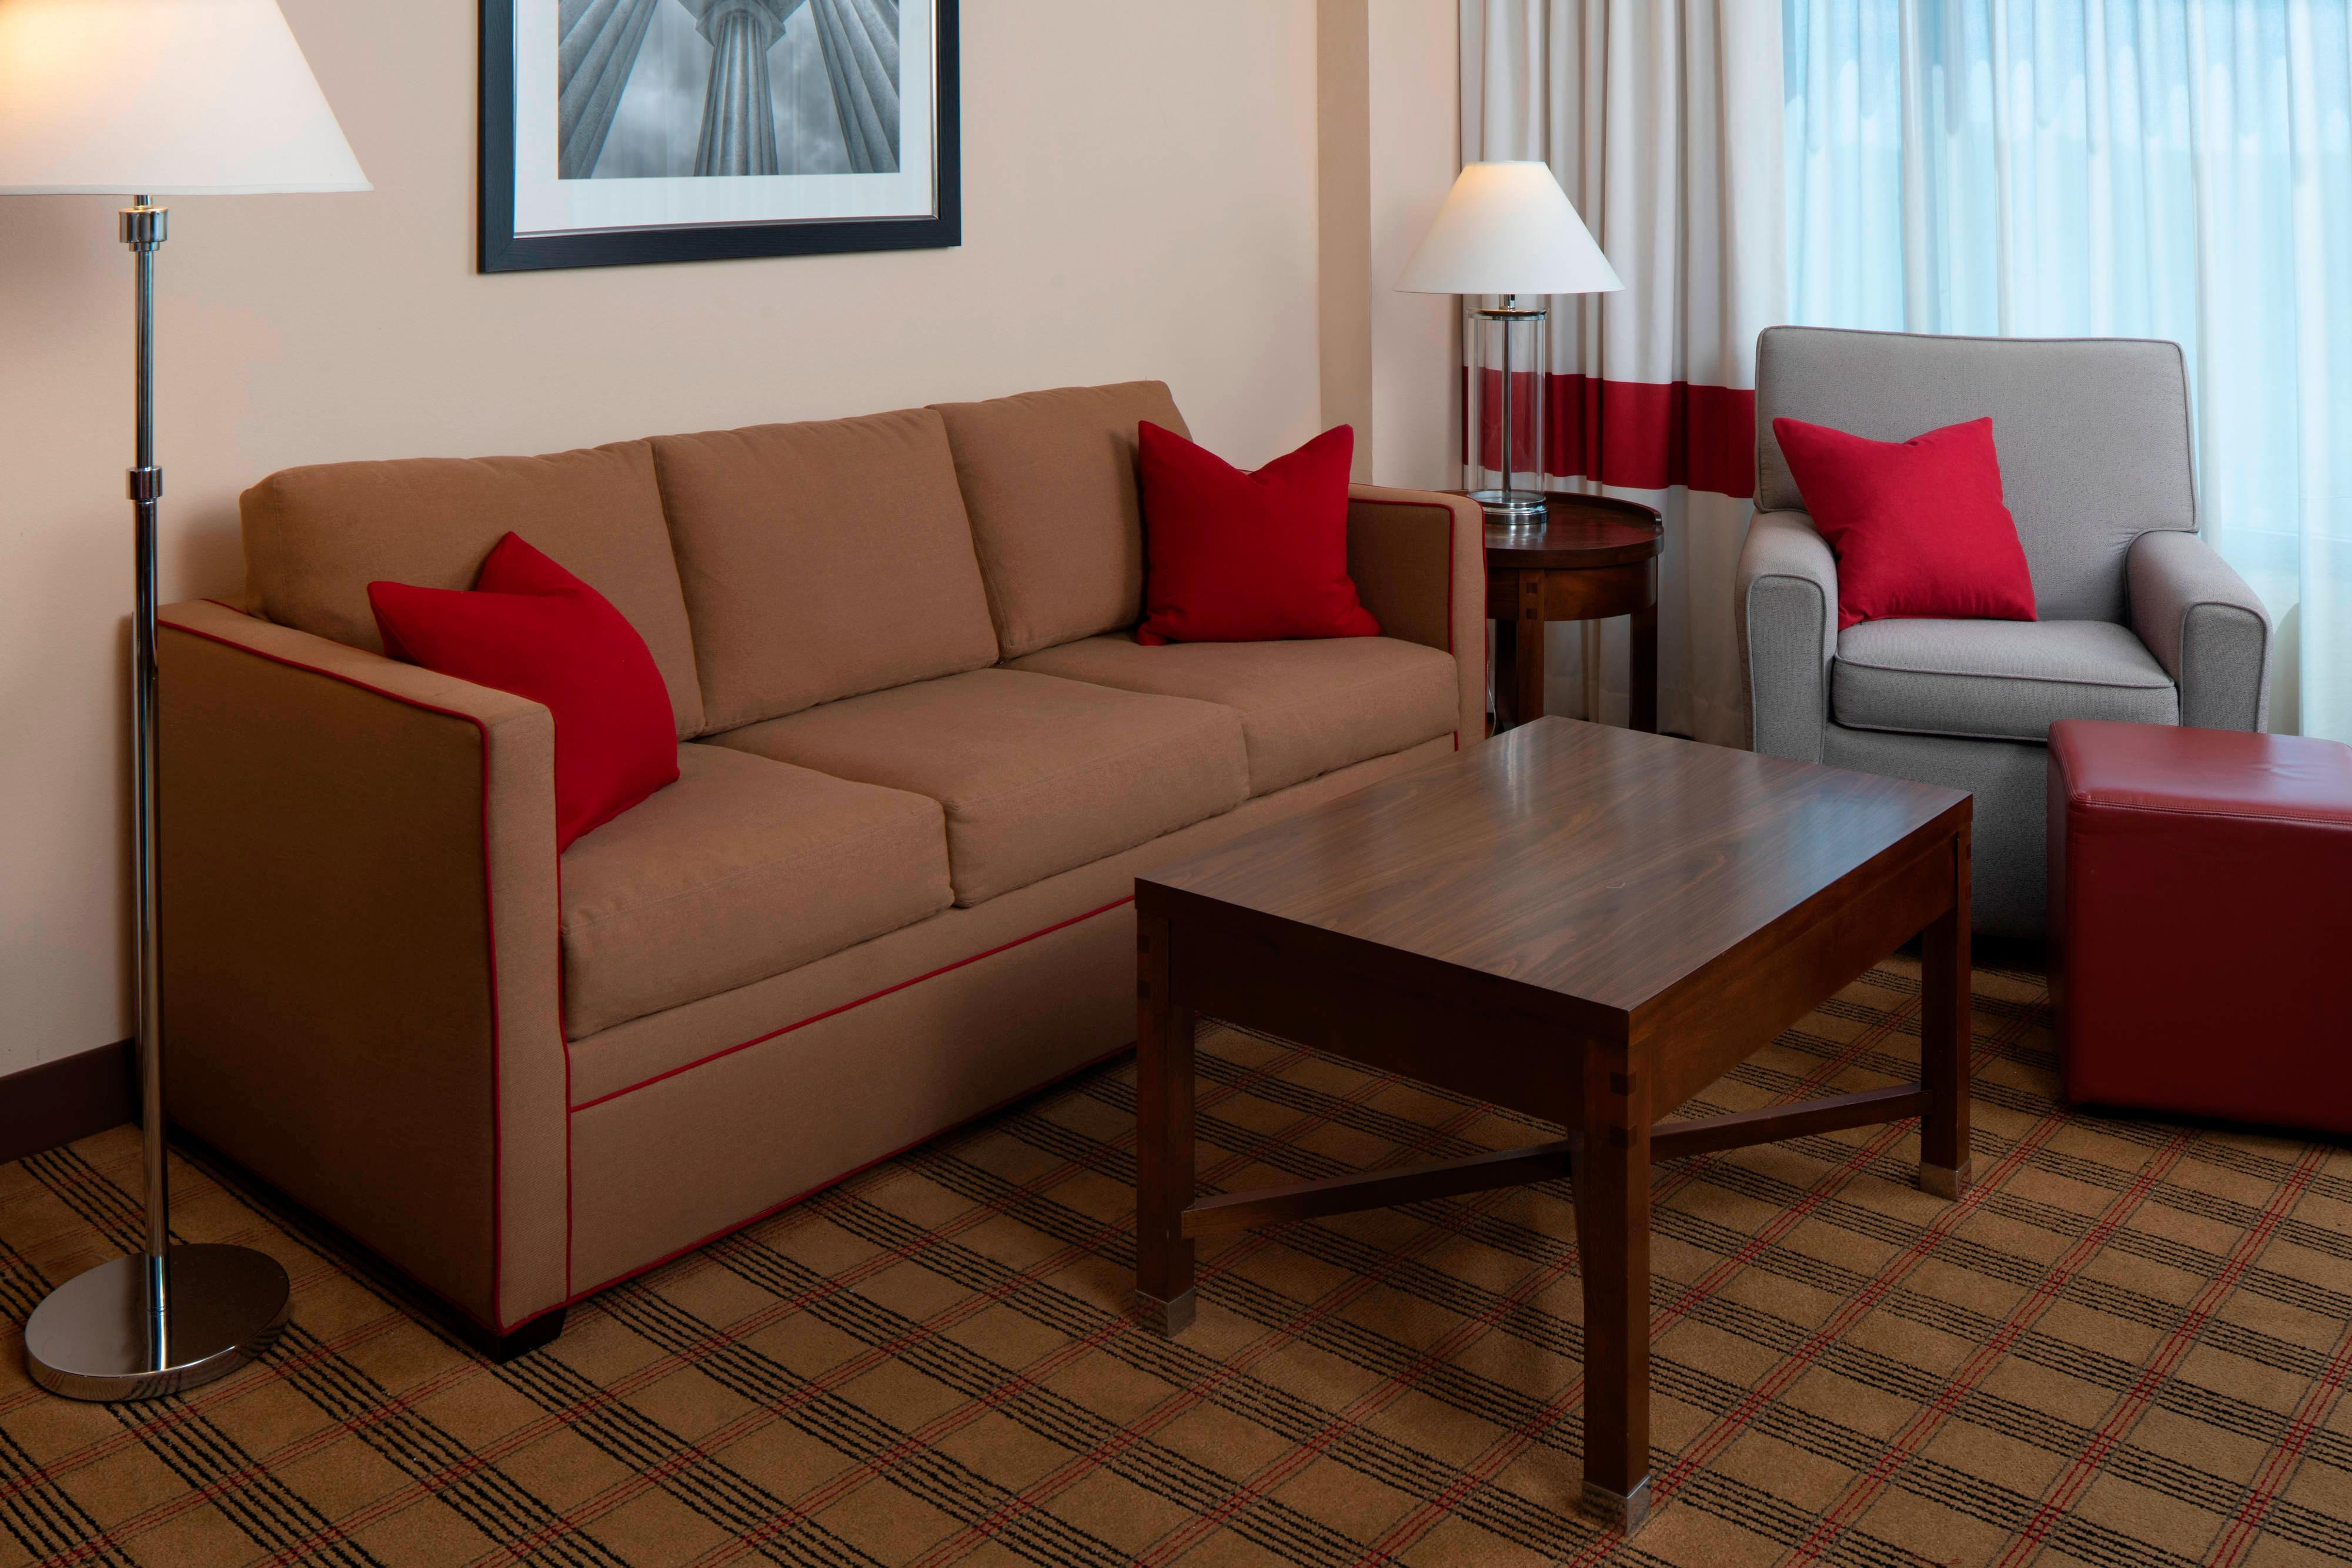 Business Leisure Hotel In Brentwood Four Points By Sheraton